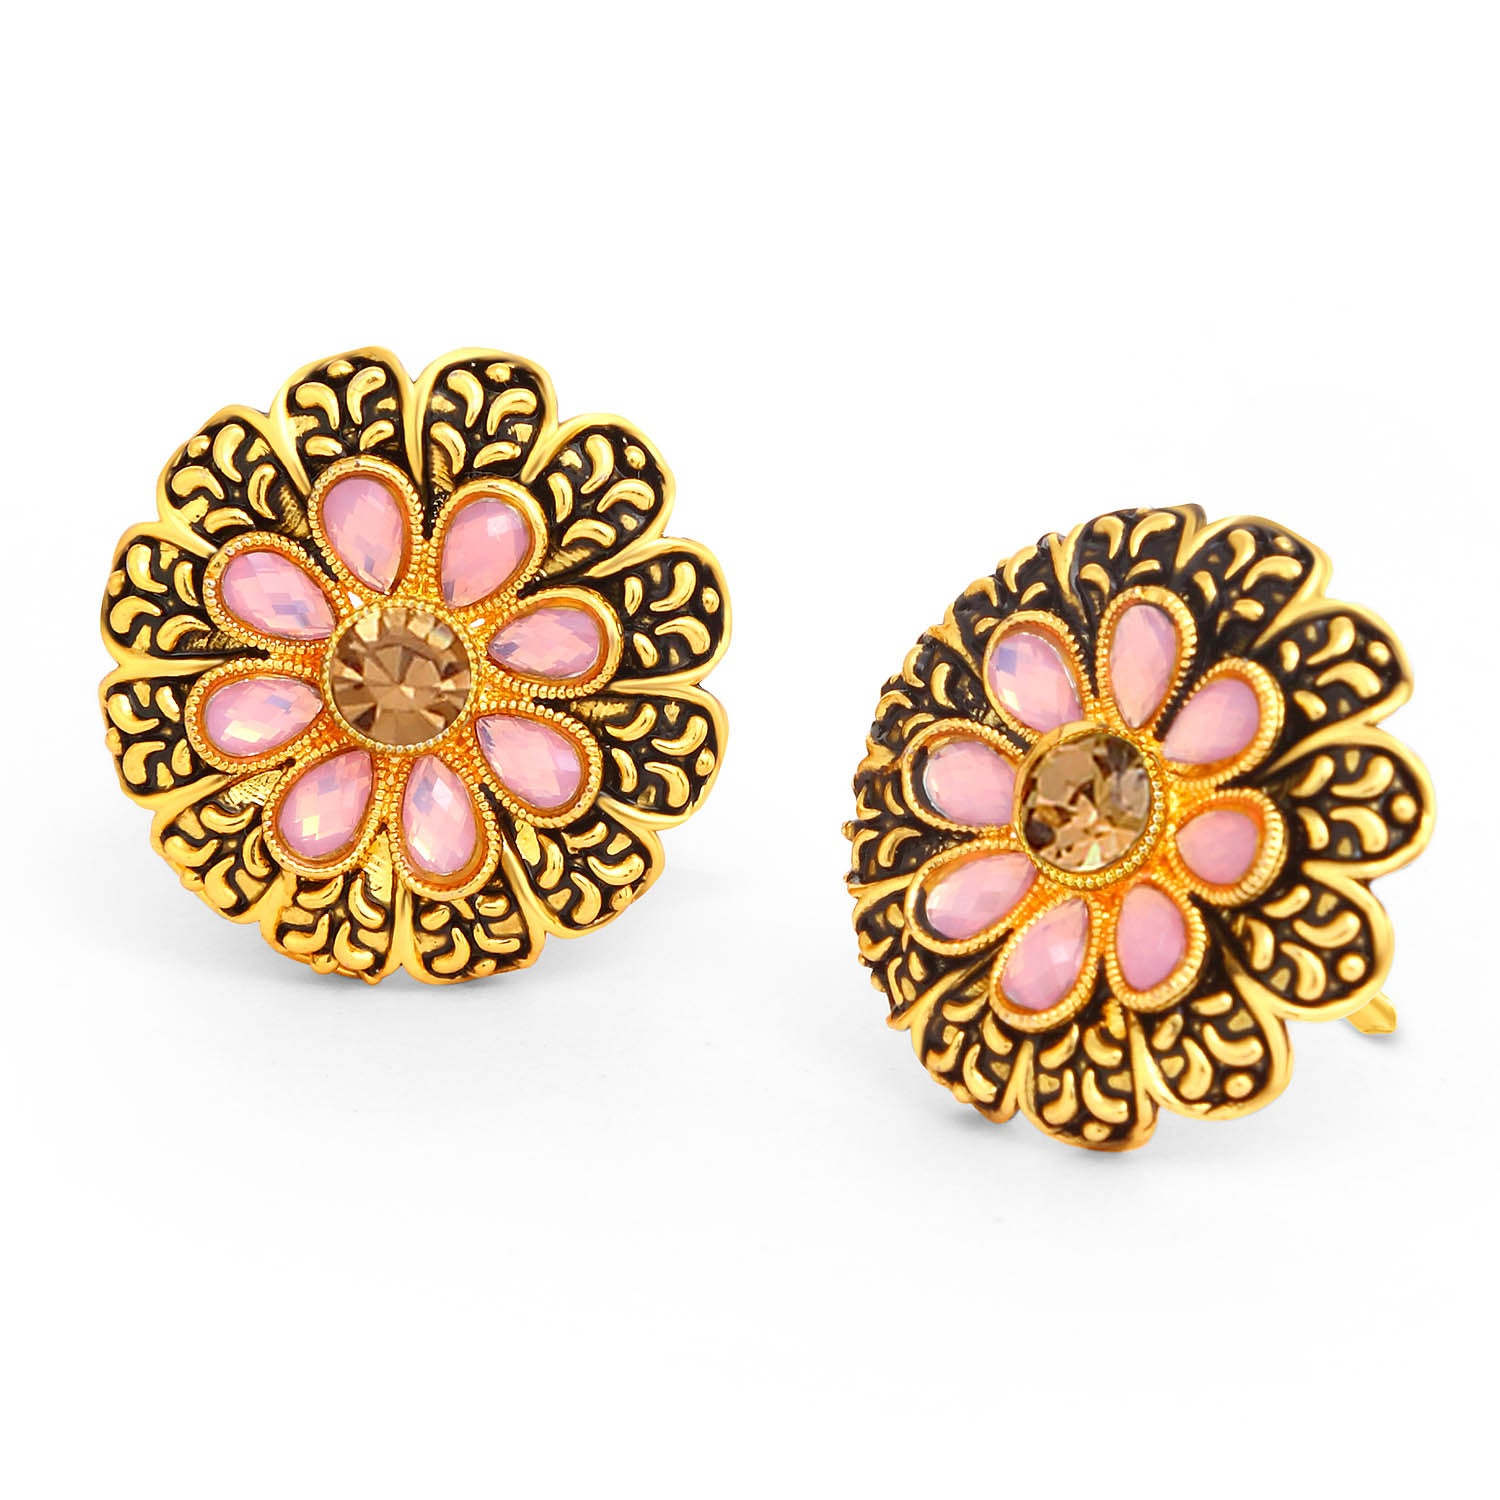 Sukkhi Marvellous LCT Stone Gold Plated Floral Stud Earring For Women-SUKKHI1-Earring